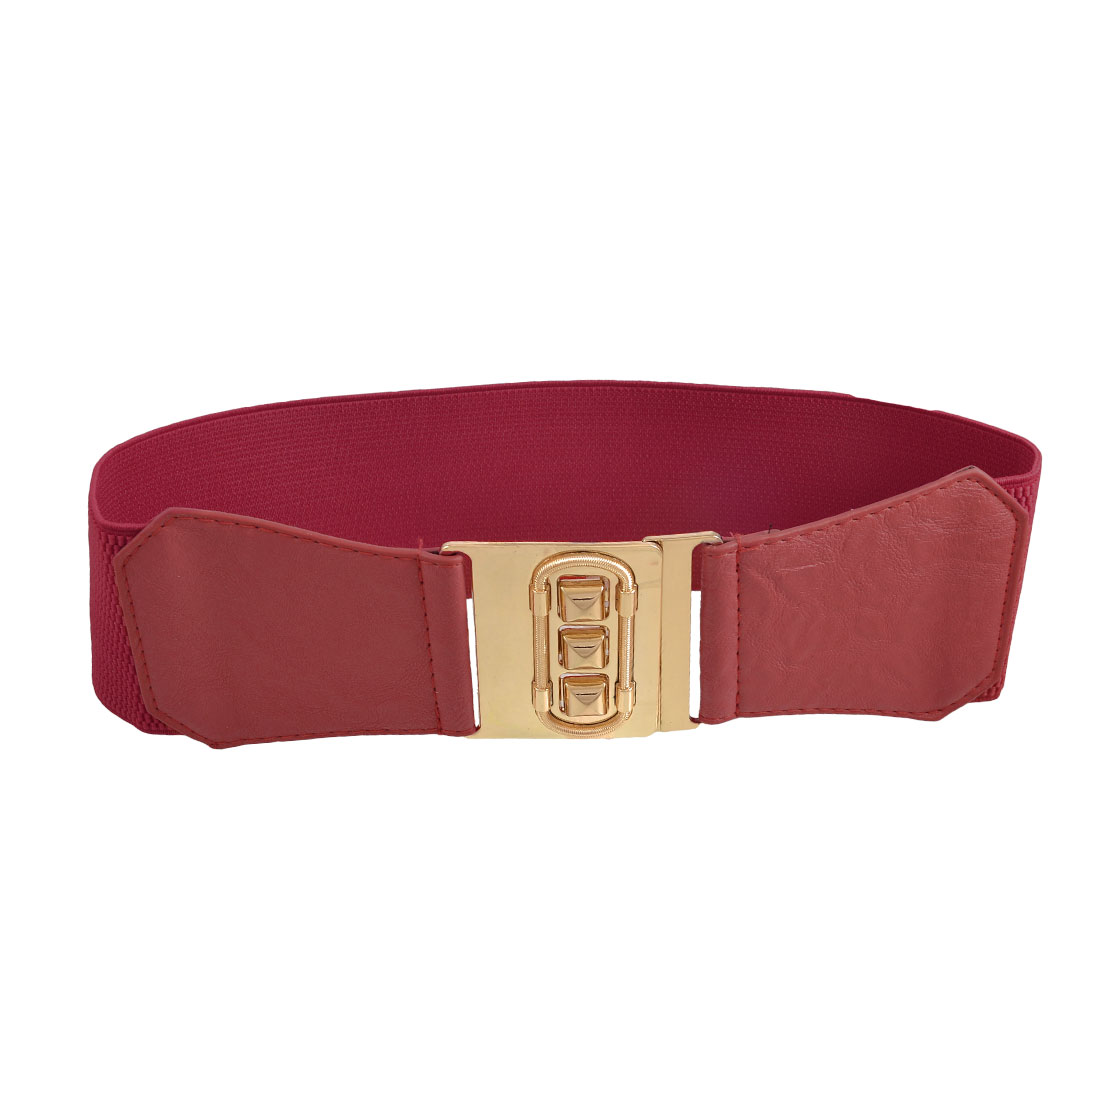 Gold Tone Metal Interlock Buckle Red Elasticated Corset Waistband Belt